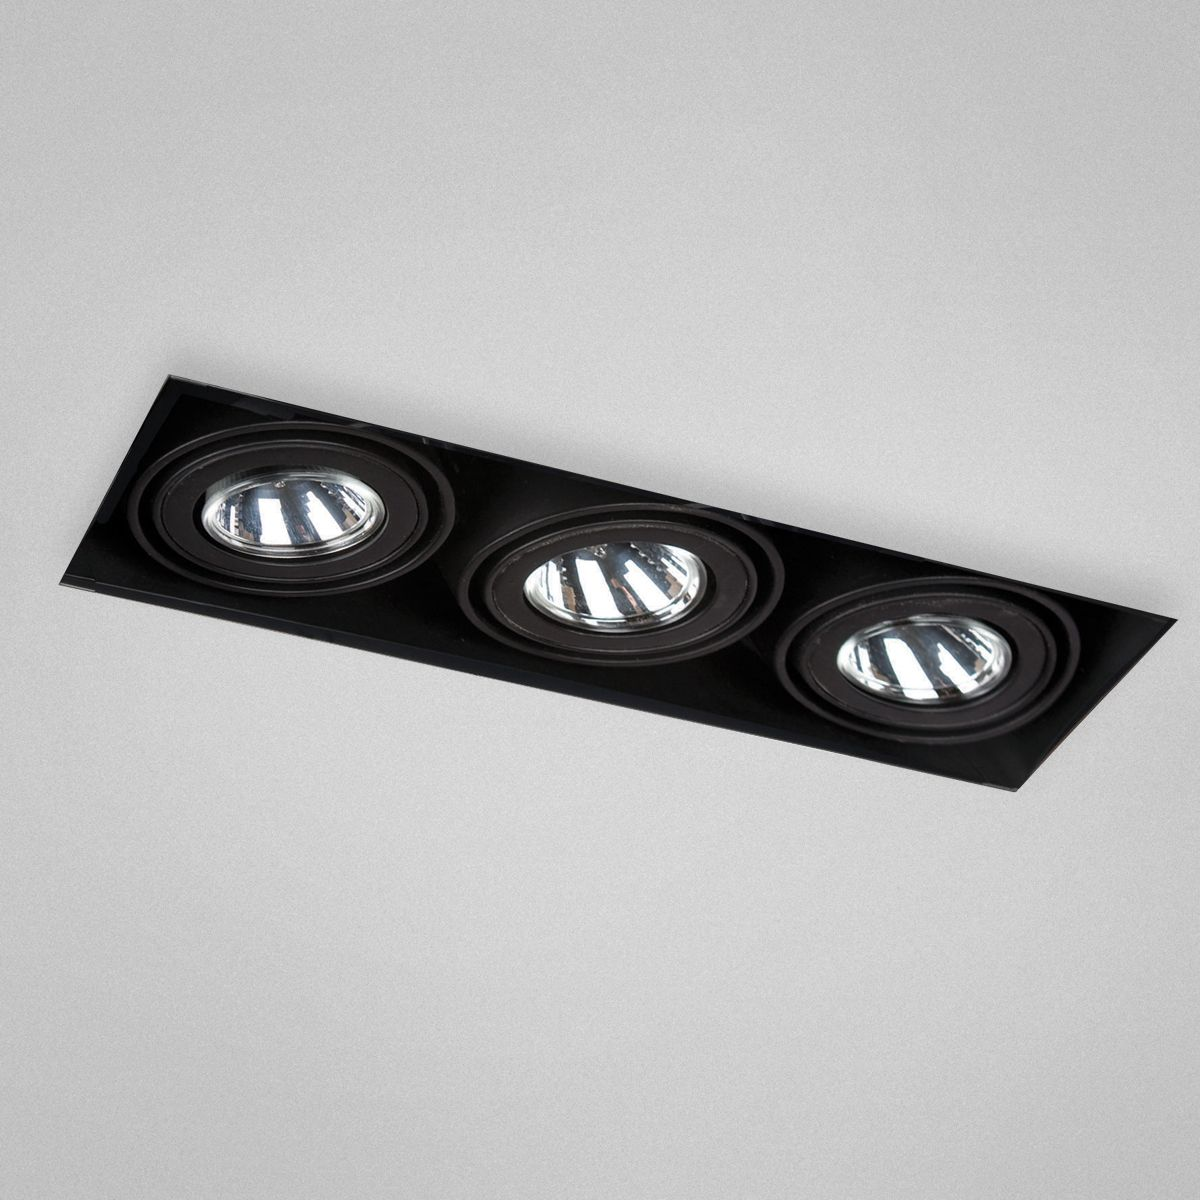 Shop eurofase lighting te213 3 light trimless recessed lighting kit shop eurofase lighting te213 3 light trimless recessed lighting kit at atg stores browse our mozeypictures Gallery